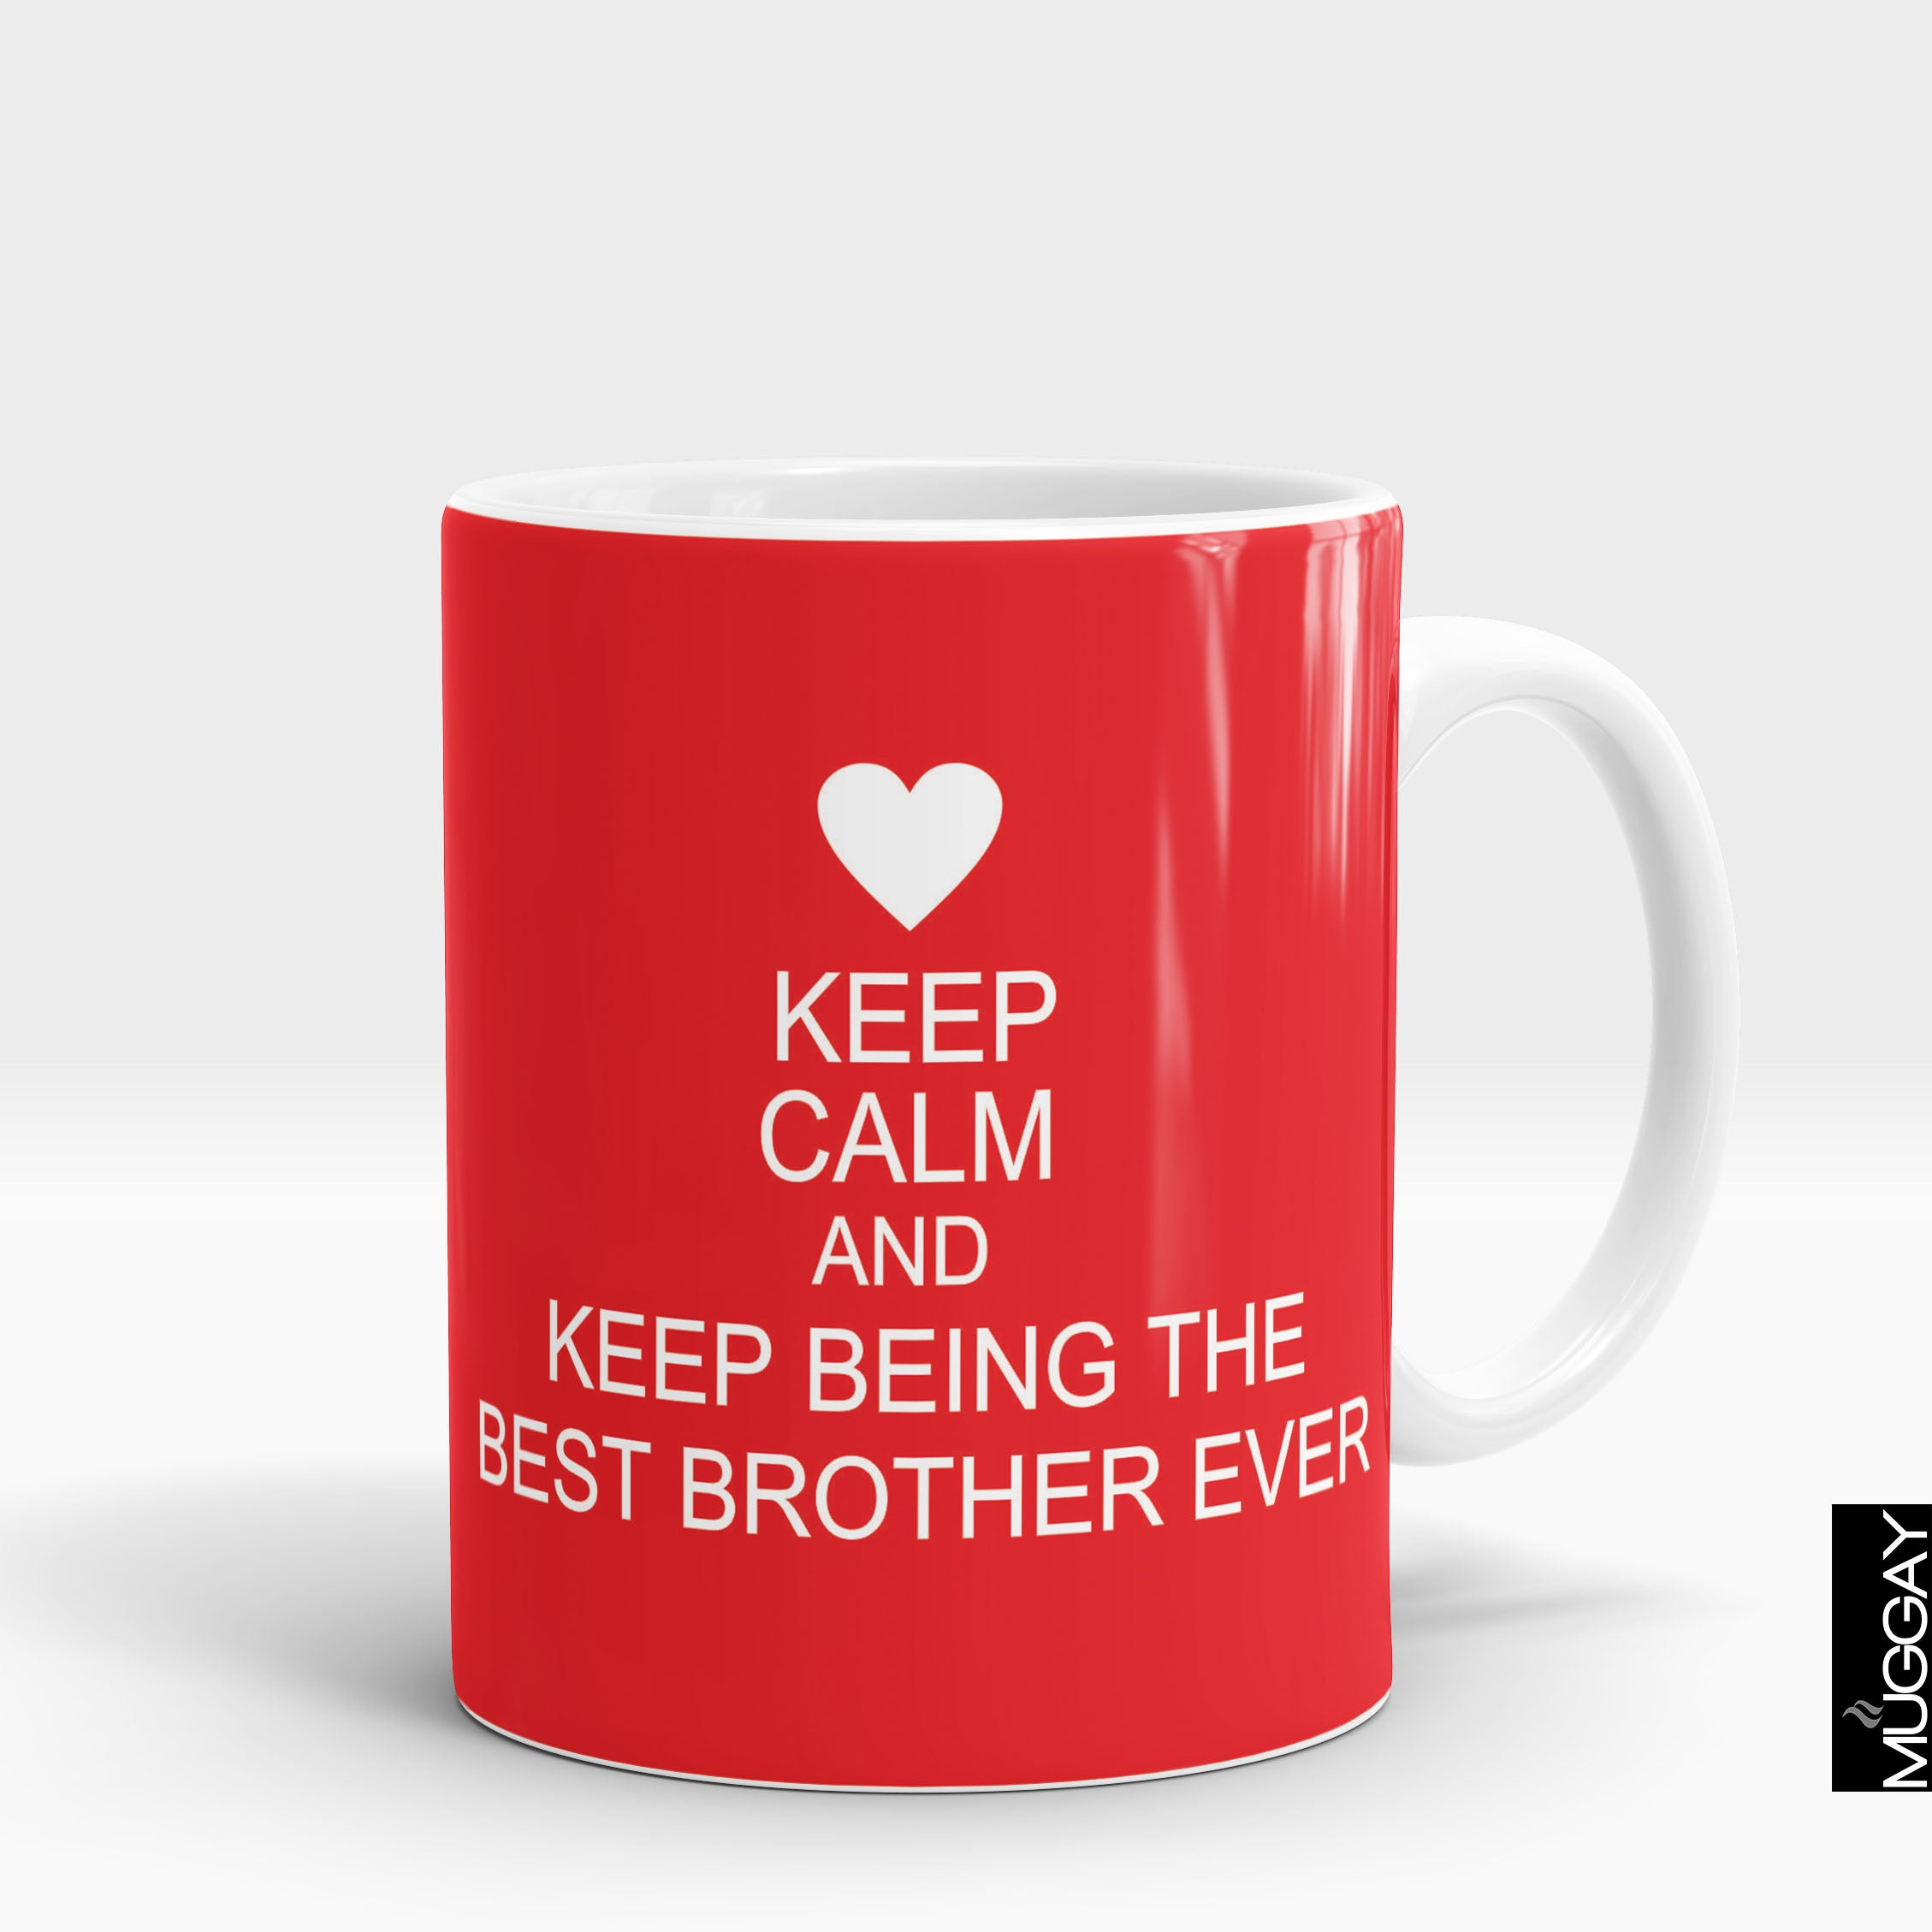 Bro5 - Muggay.com - Mugs - Printing shop - truck Art mugs - Mug printing - Customized printing - Digital printing - Muggay